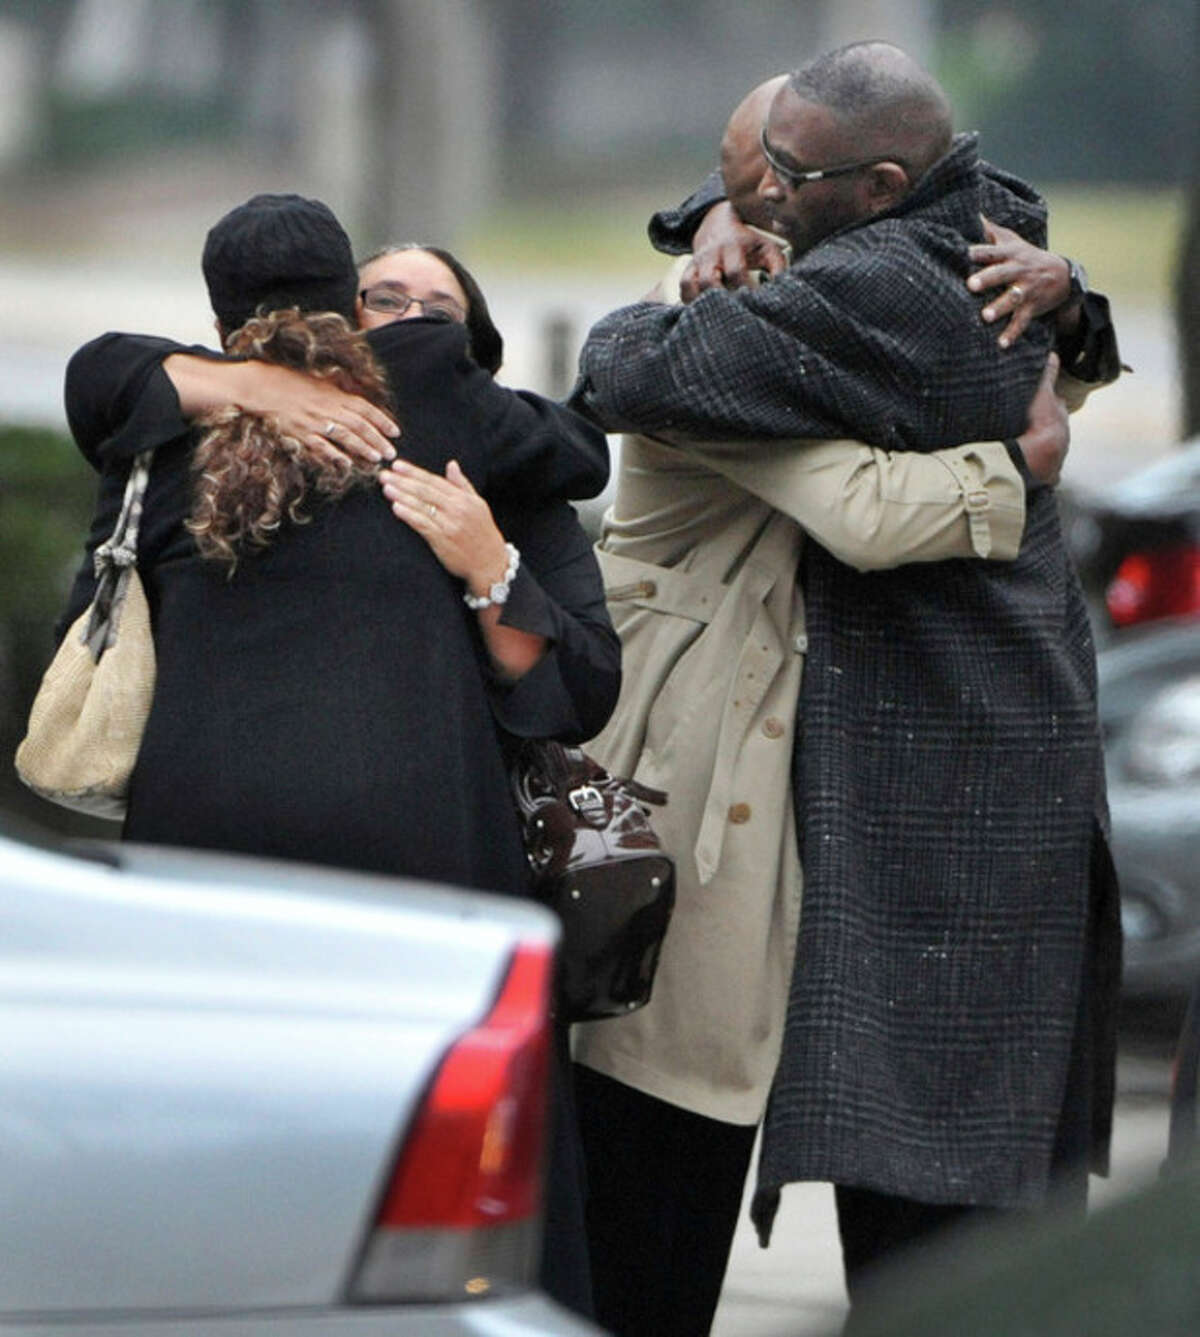 Ron Davis, the father of Jordan Davis is embraced as he arrives at the funeral home for the visitation and a memorial service for his son Jordan, Wednesday, Nov. 28, 2012 in Jacksonville, Fla. Michael David Dunn has been charged with fatally shooting Davis outside a Jacksonville convenience store following an argument that was triggered because the music coming from the teen's car was too loud. (AP Photo/The Florida Times-Union, Bob Self)